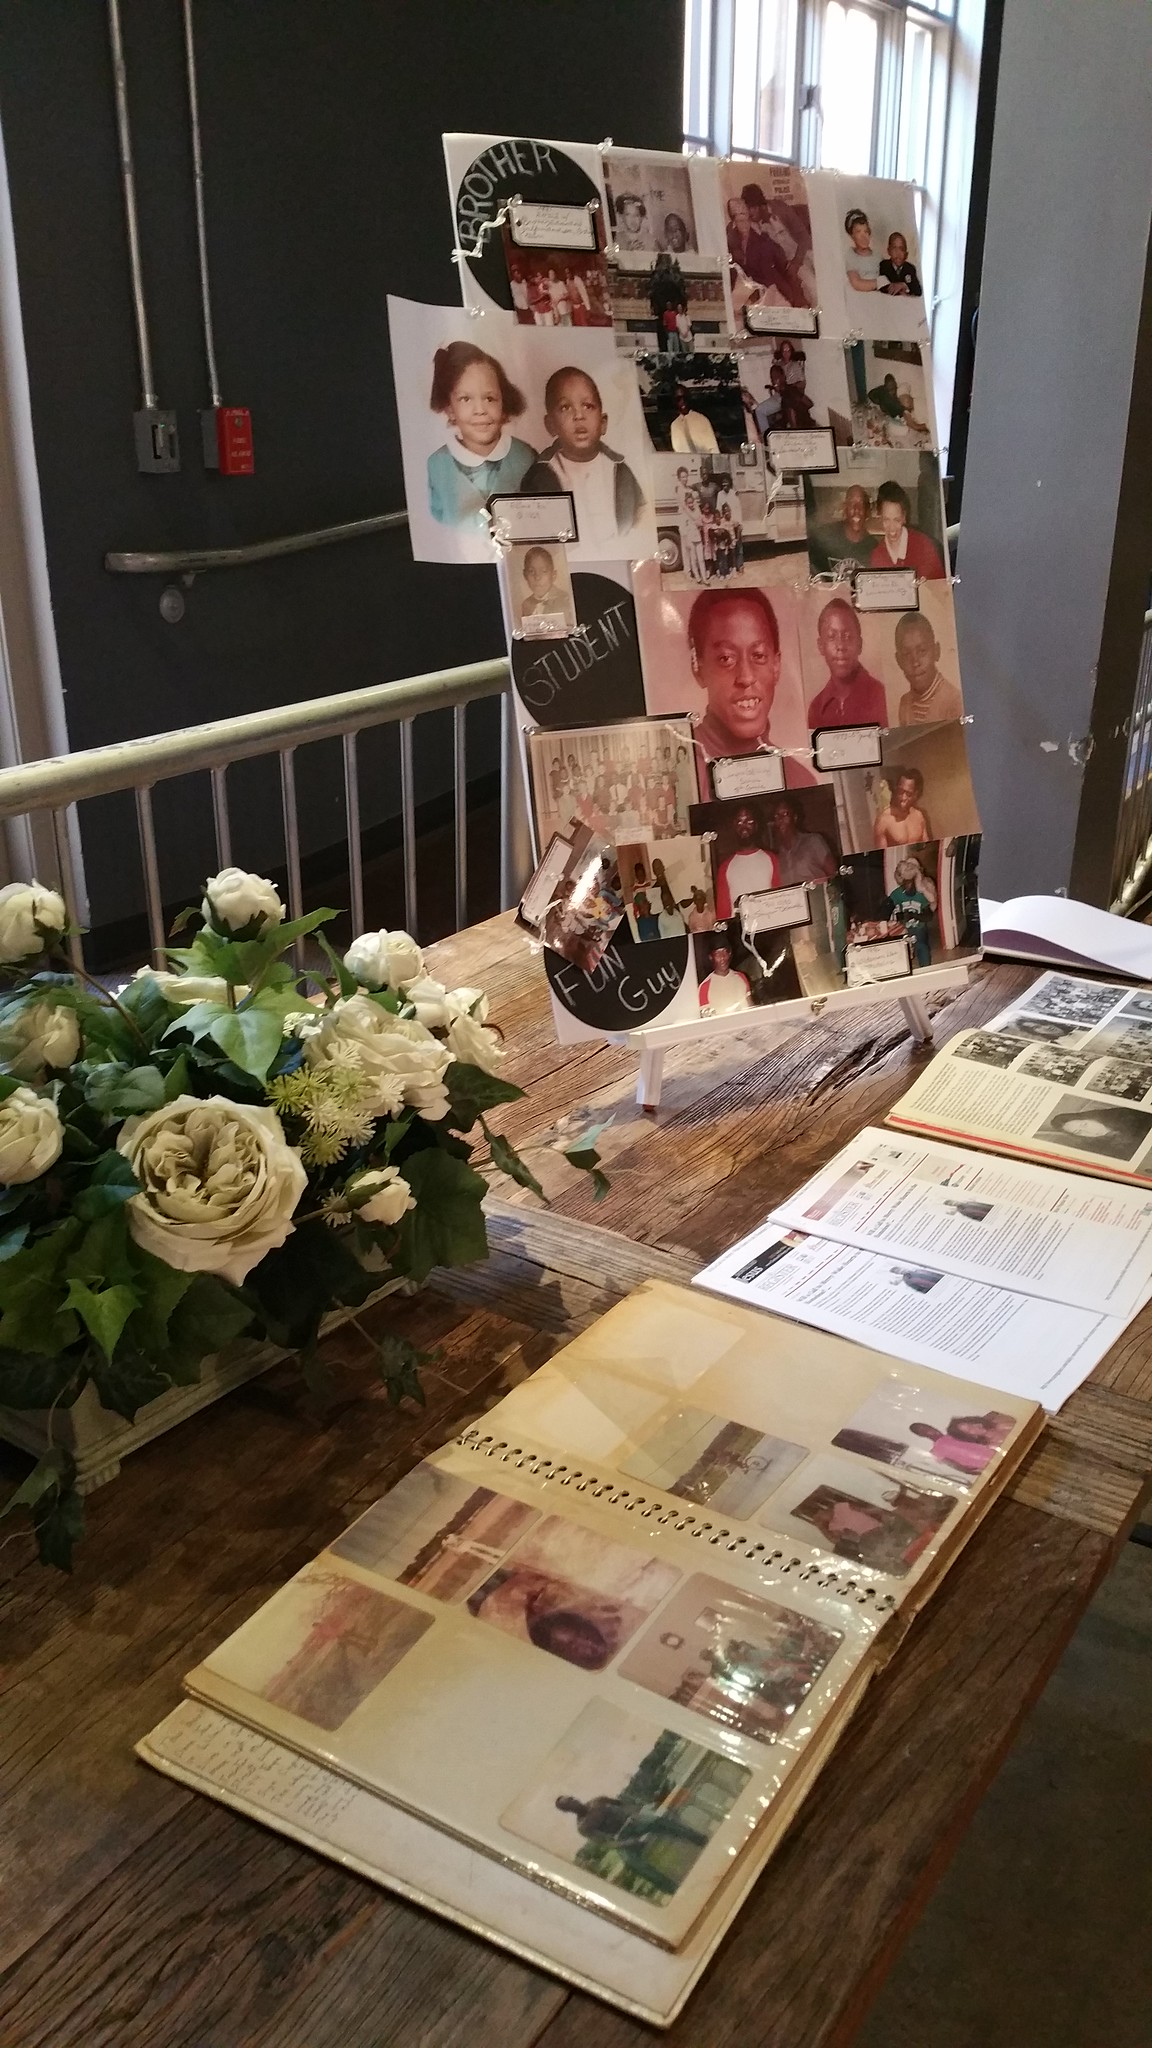 A table with white roses, a family album, and a photo collage on it.